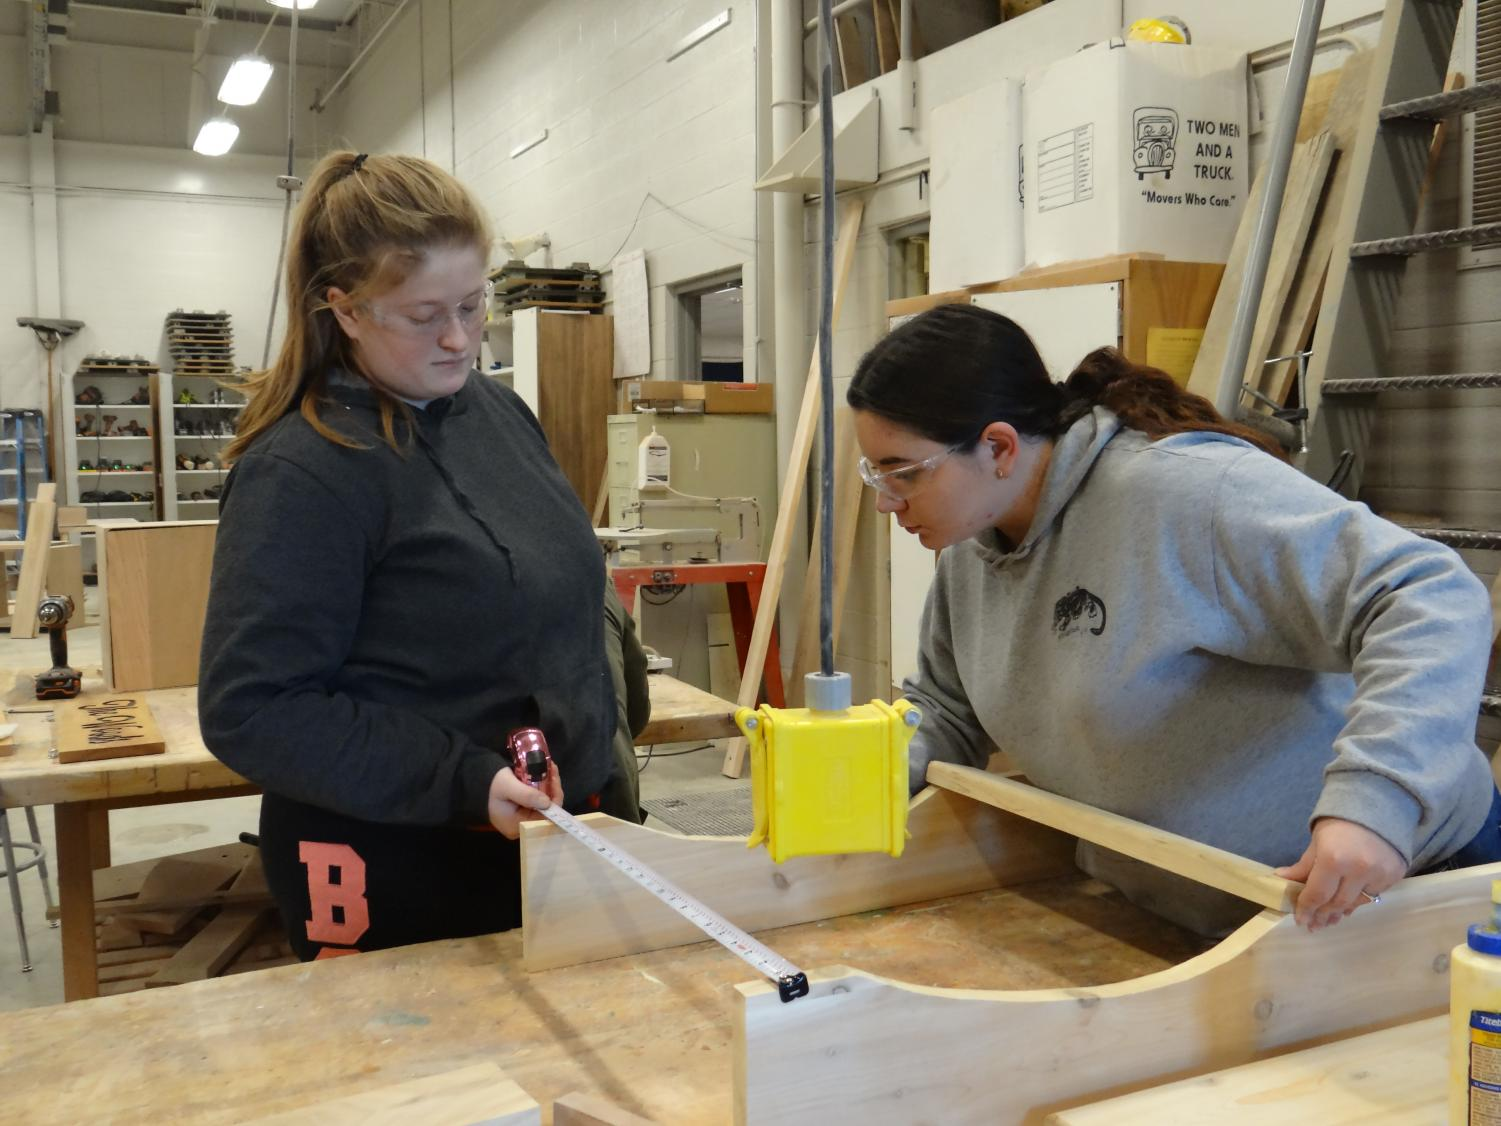 In the beginning stages of a woodworking project, senior Bethany Plennert helps senior Tayler Varner make measurements on parts of her chair, that is designed to look like the lower peninsula of Michigan